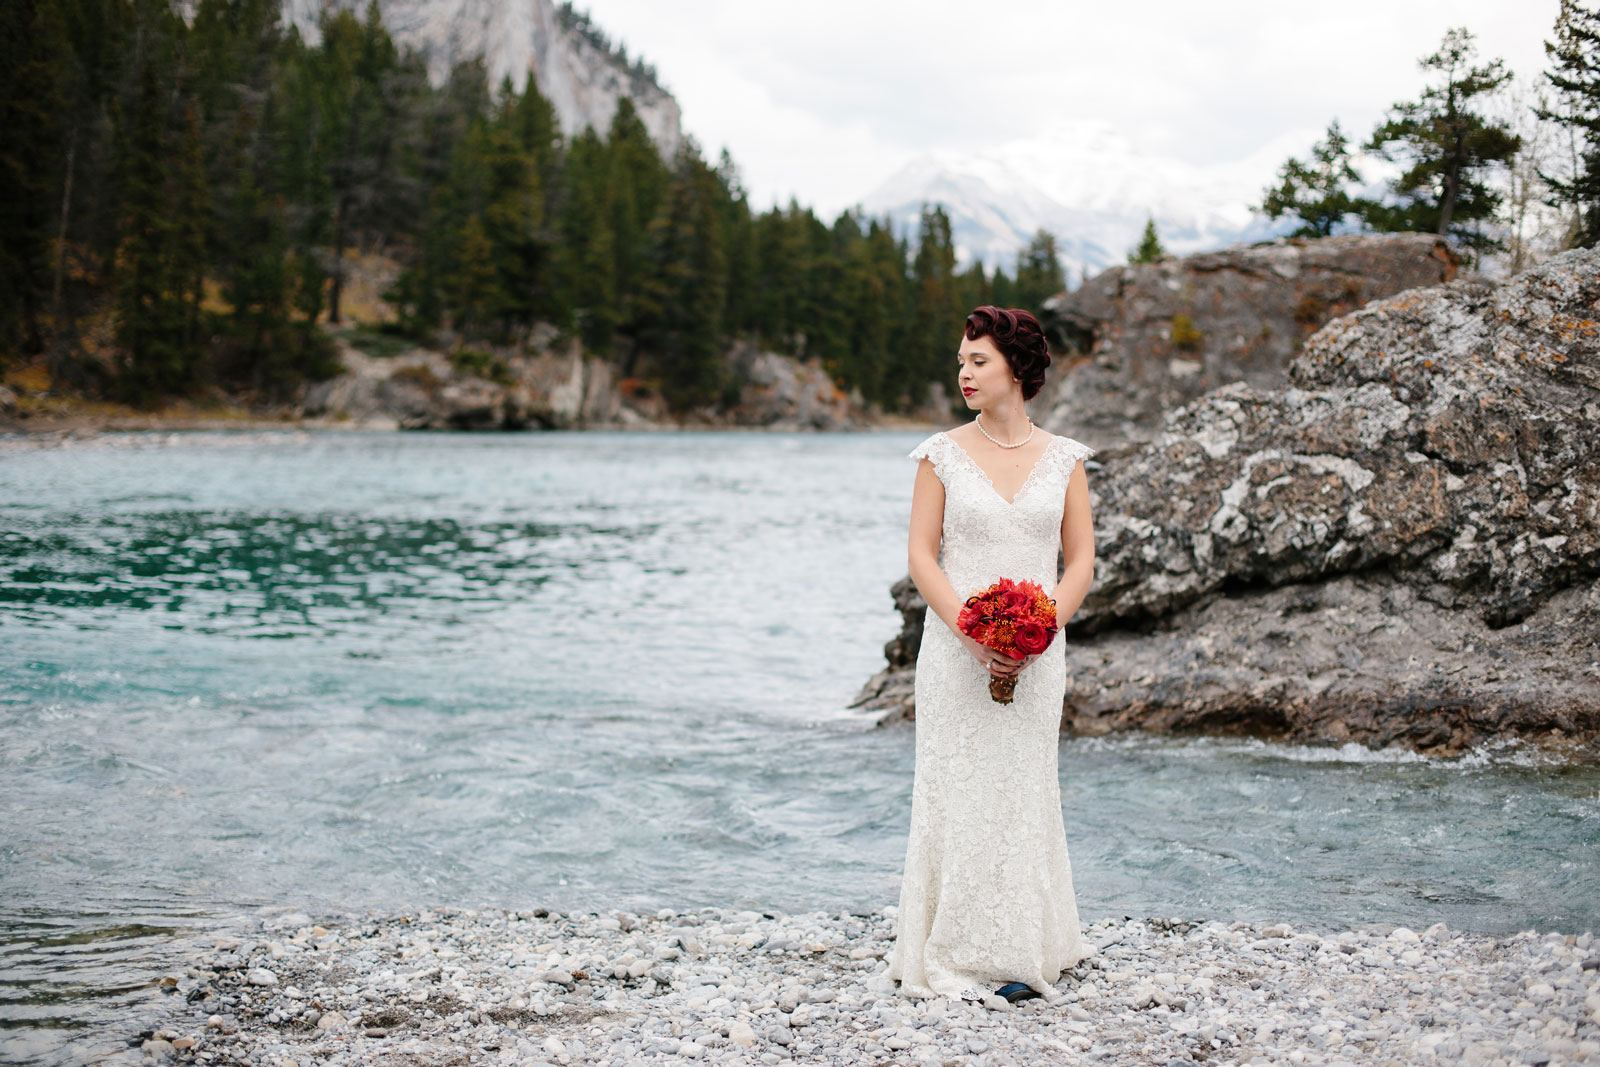 As seen in Rocky Mountain Bride  Photo Credit: Jill Coursen Photography